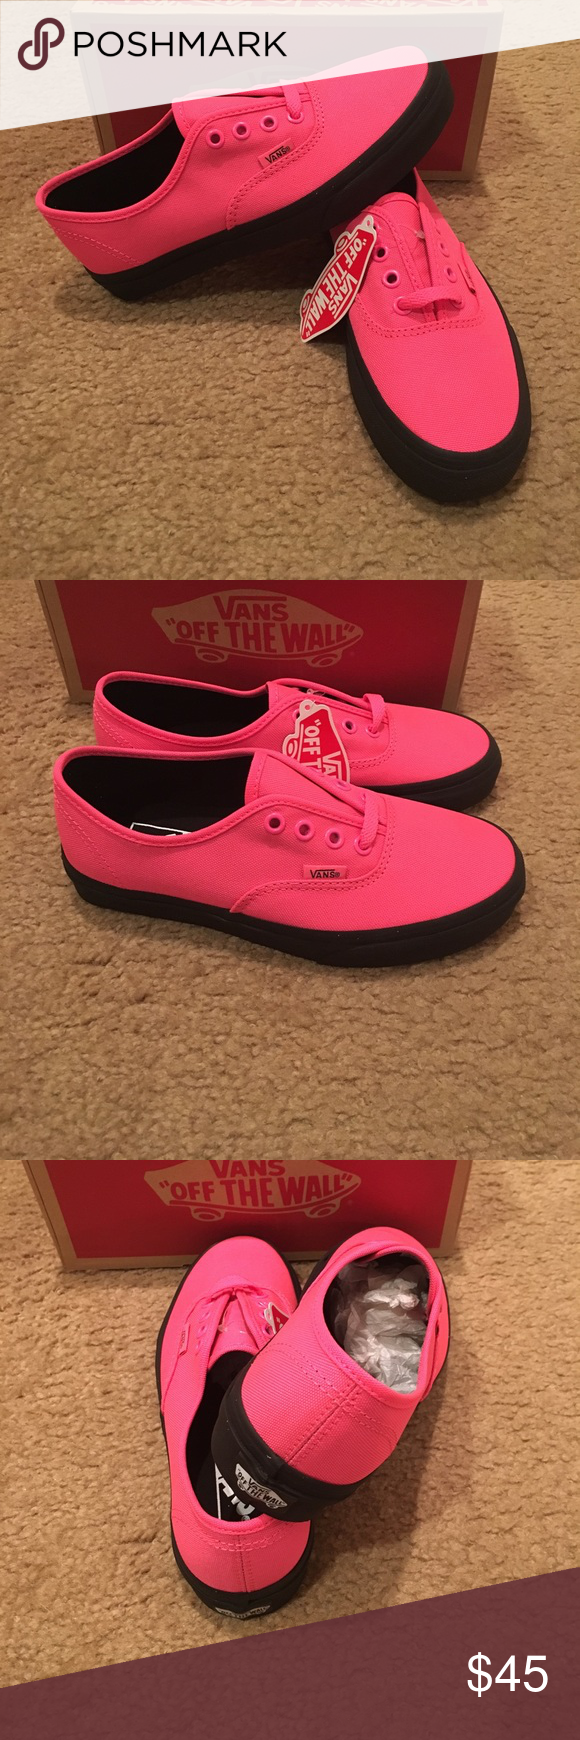 9fb6937f76 Authentic Black Outsole Vans New in box. Neon Pink Black Vans Shoes Sneakers